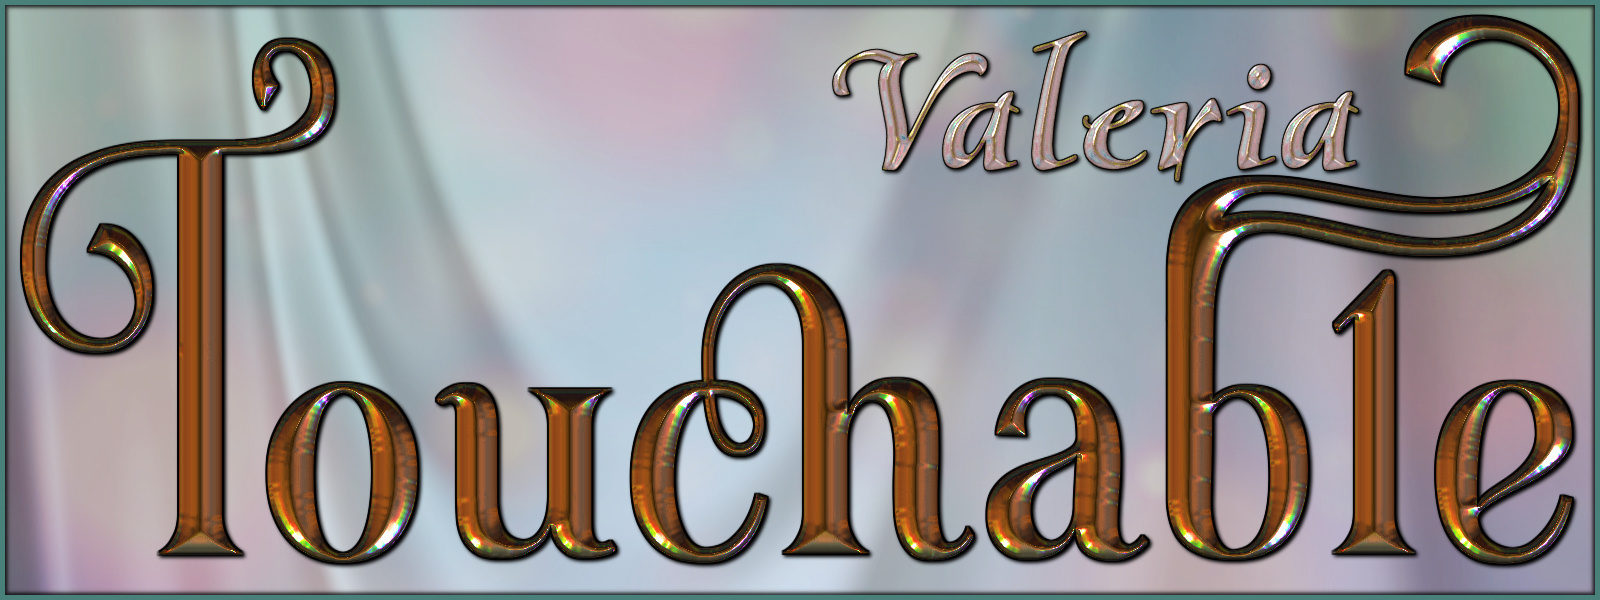 Touchable Valeria